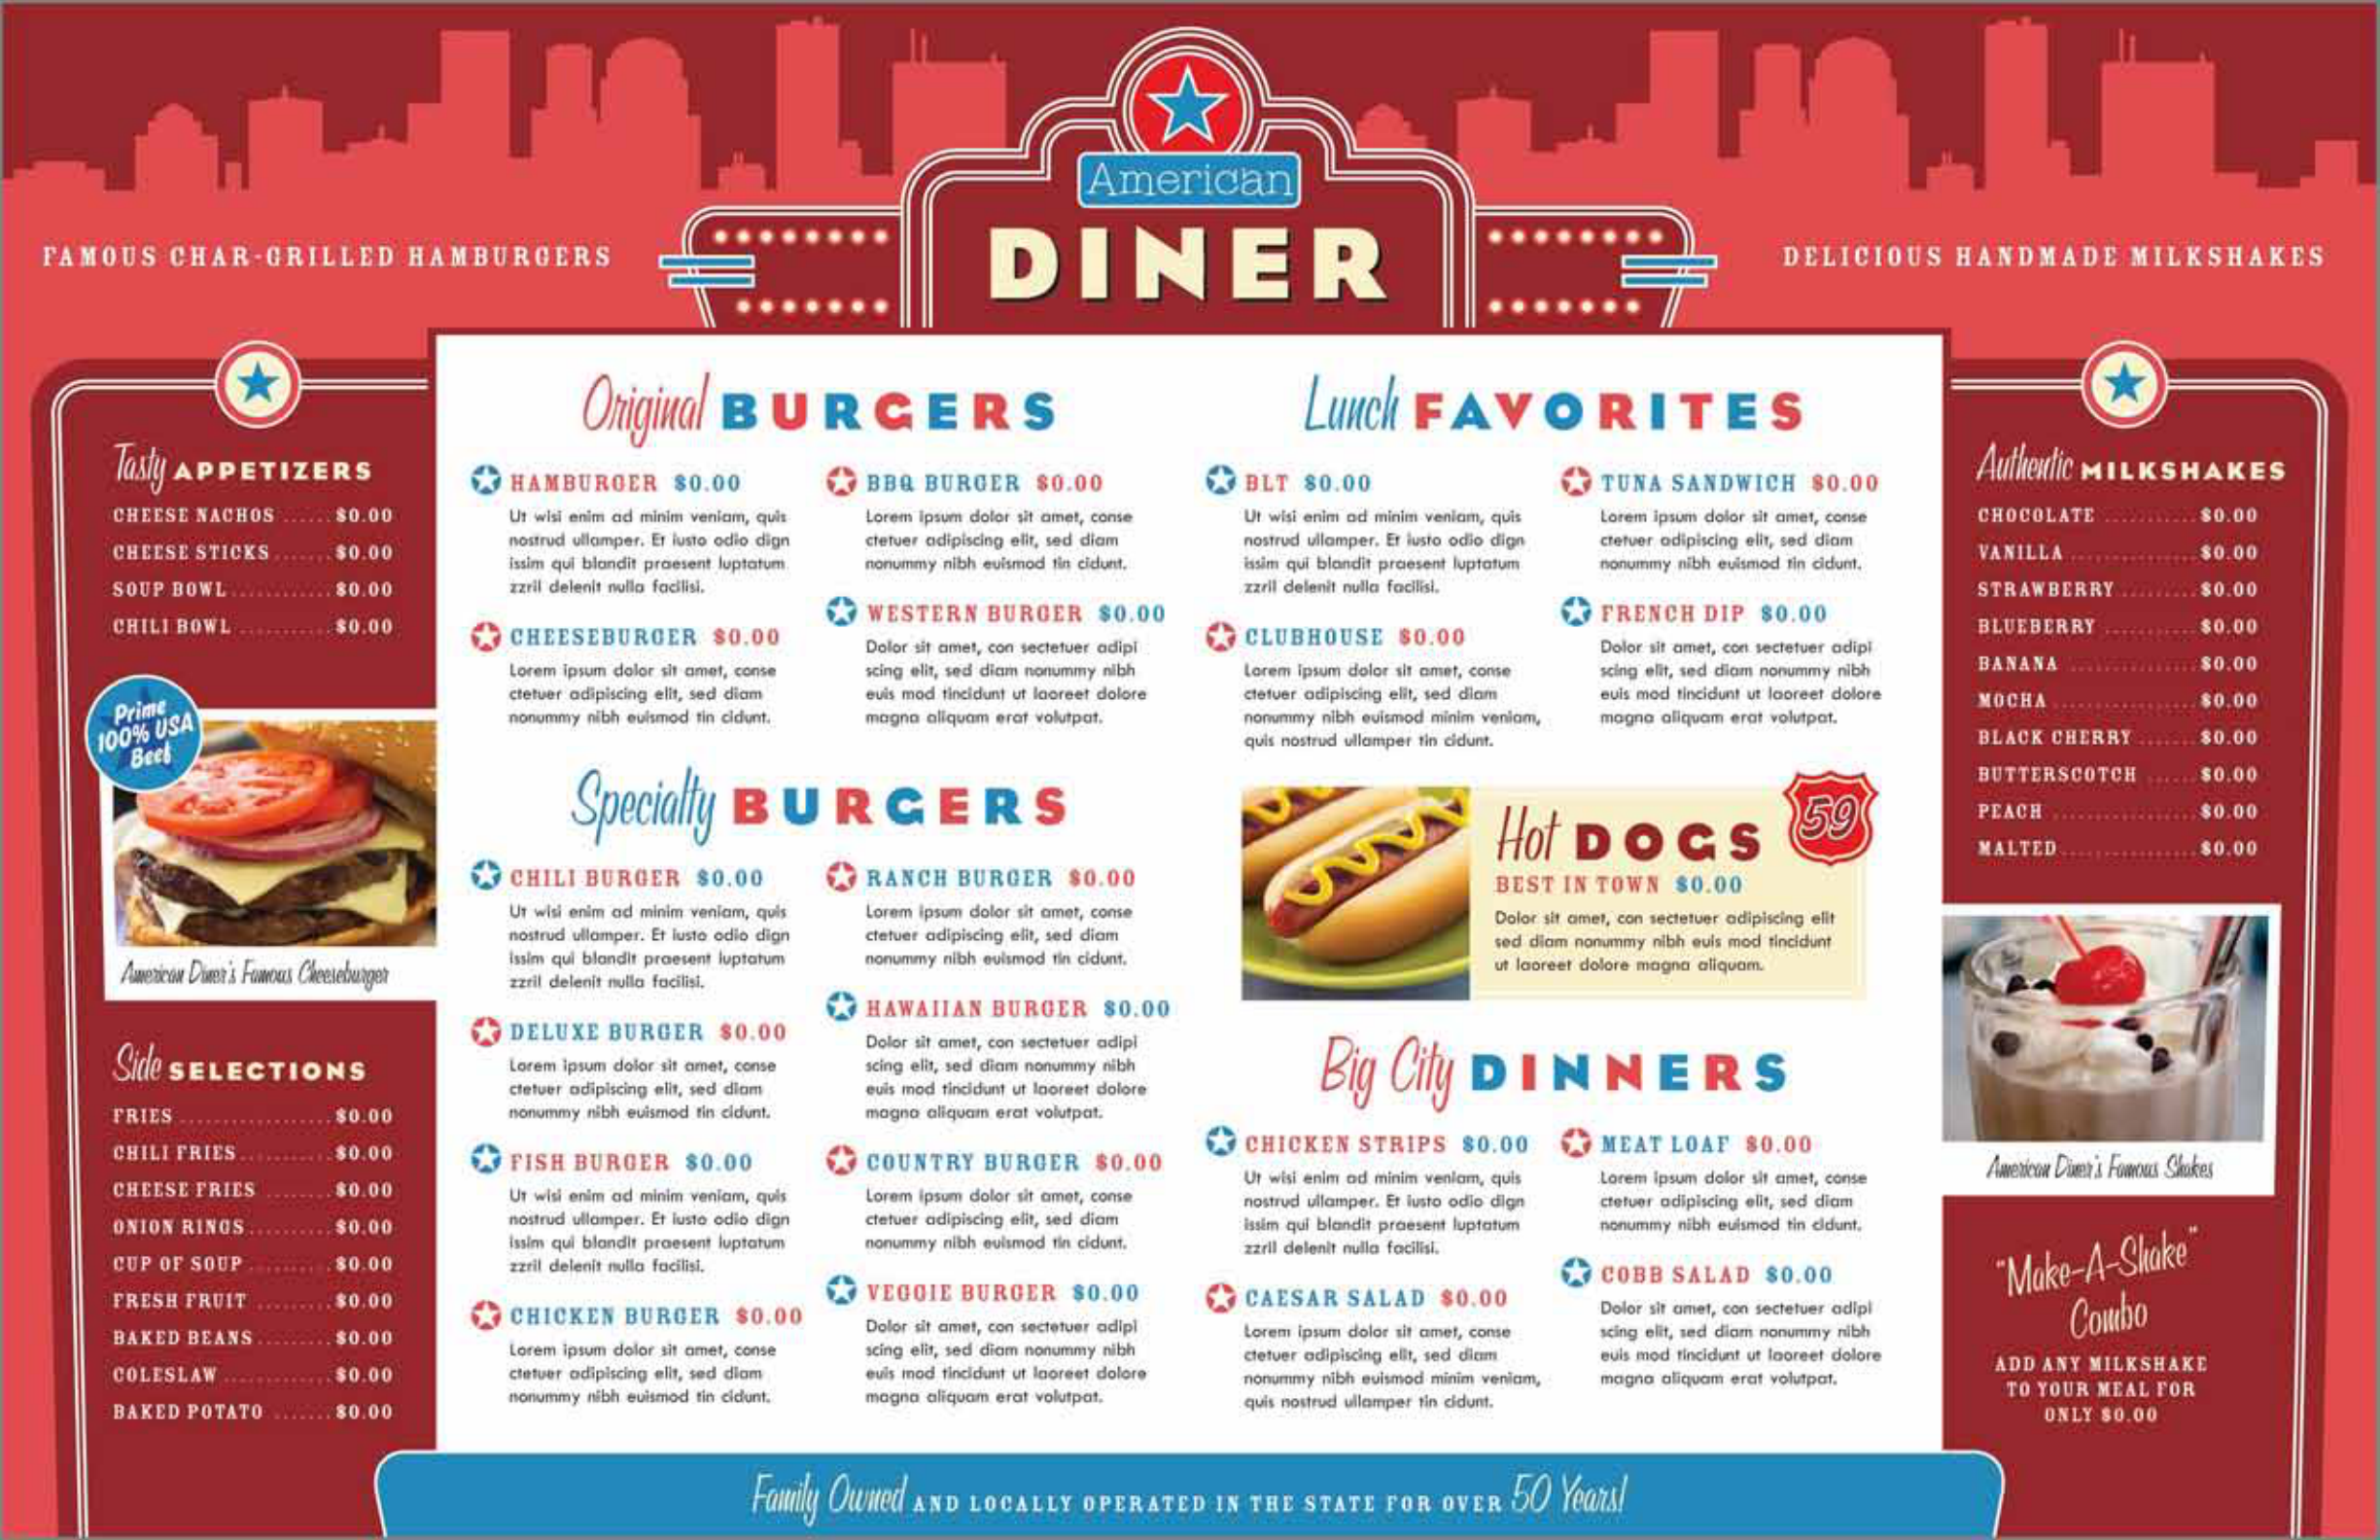 The American Diner Restaurant Menu Template Can Help You